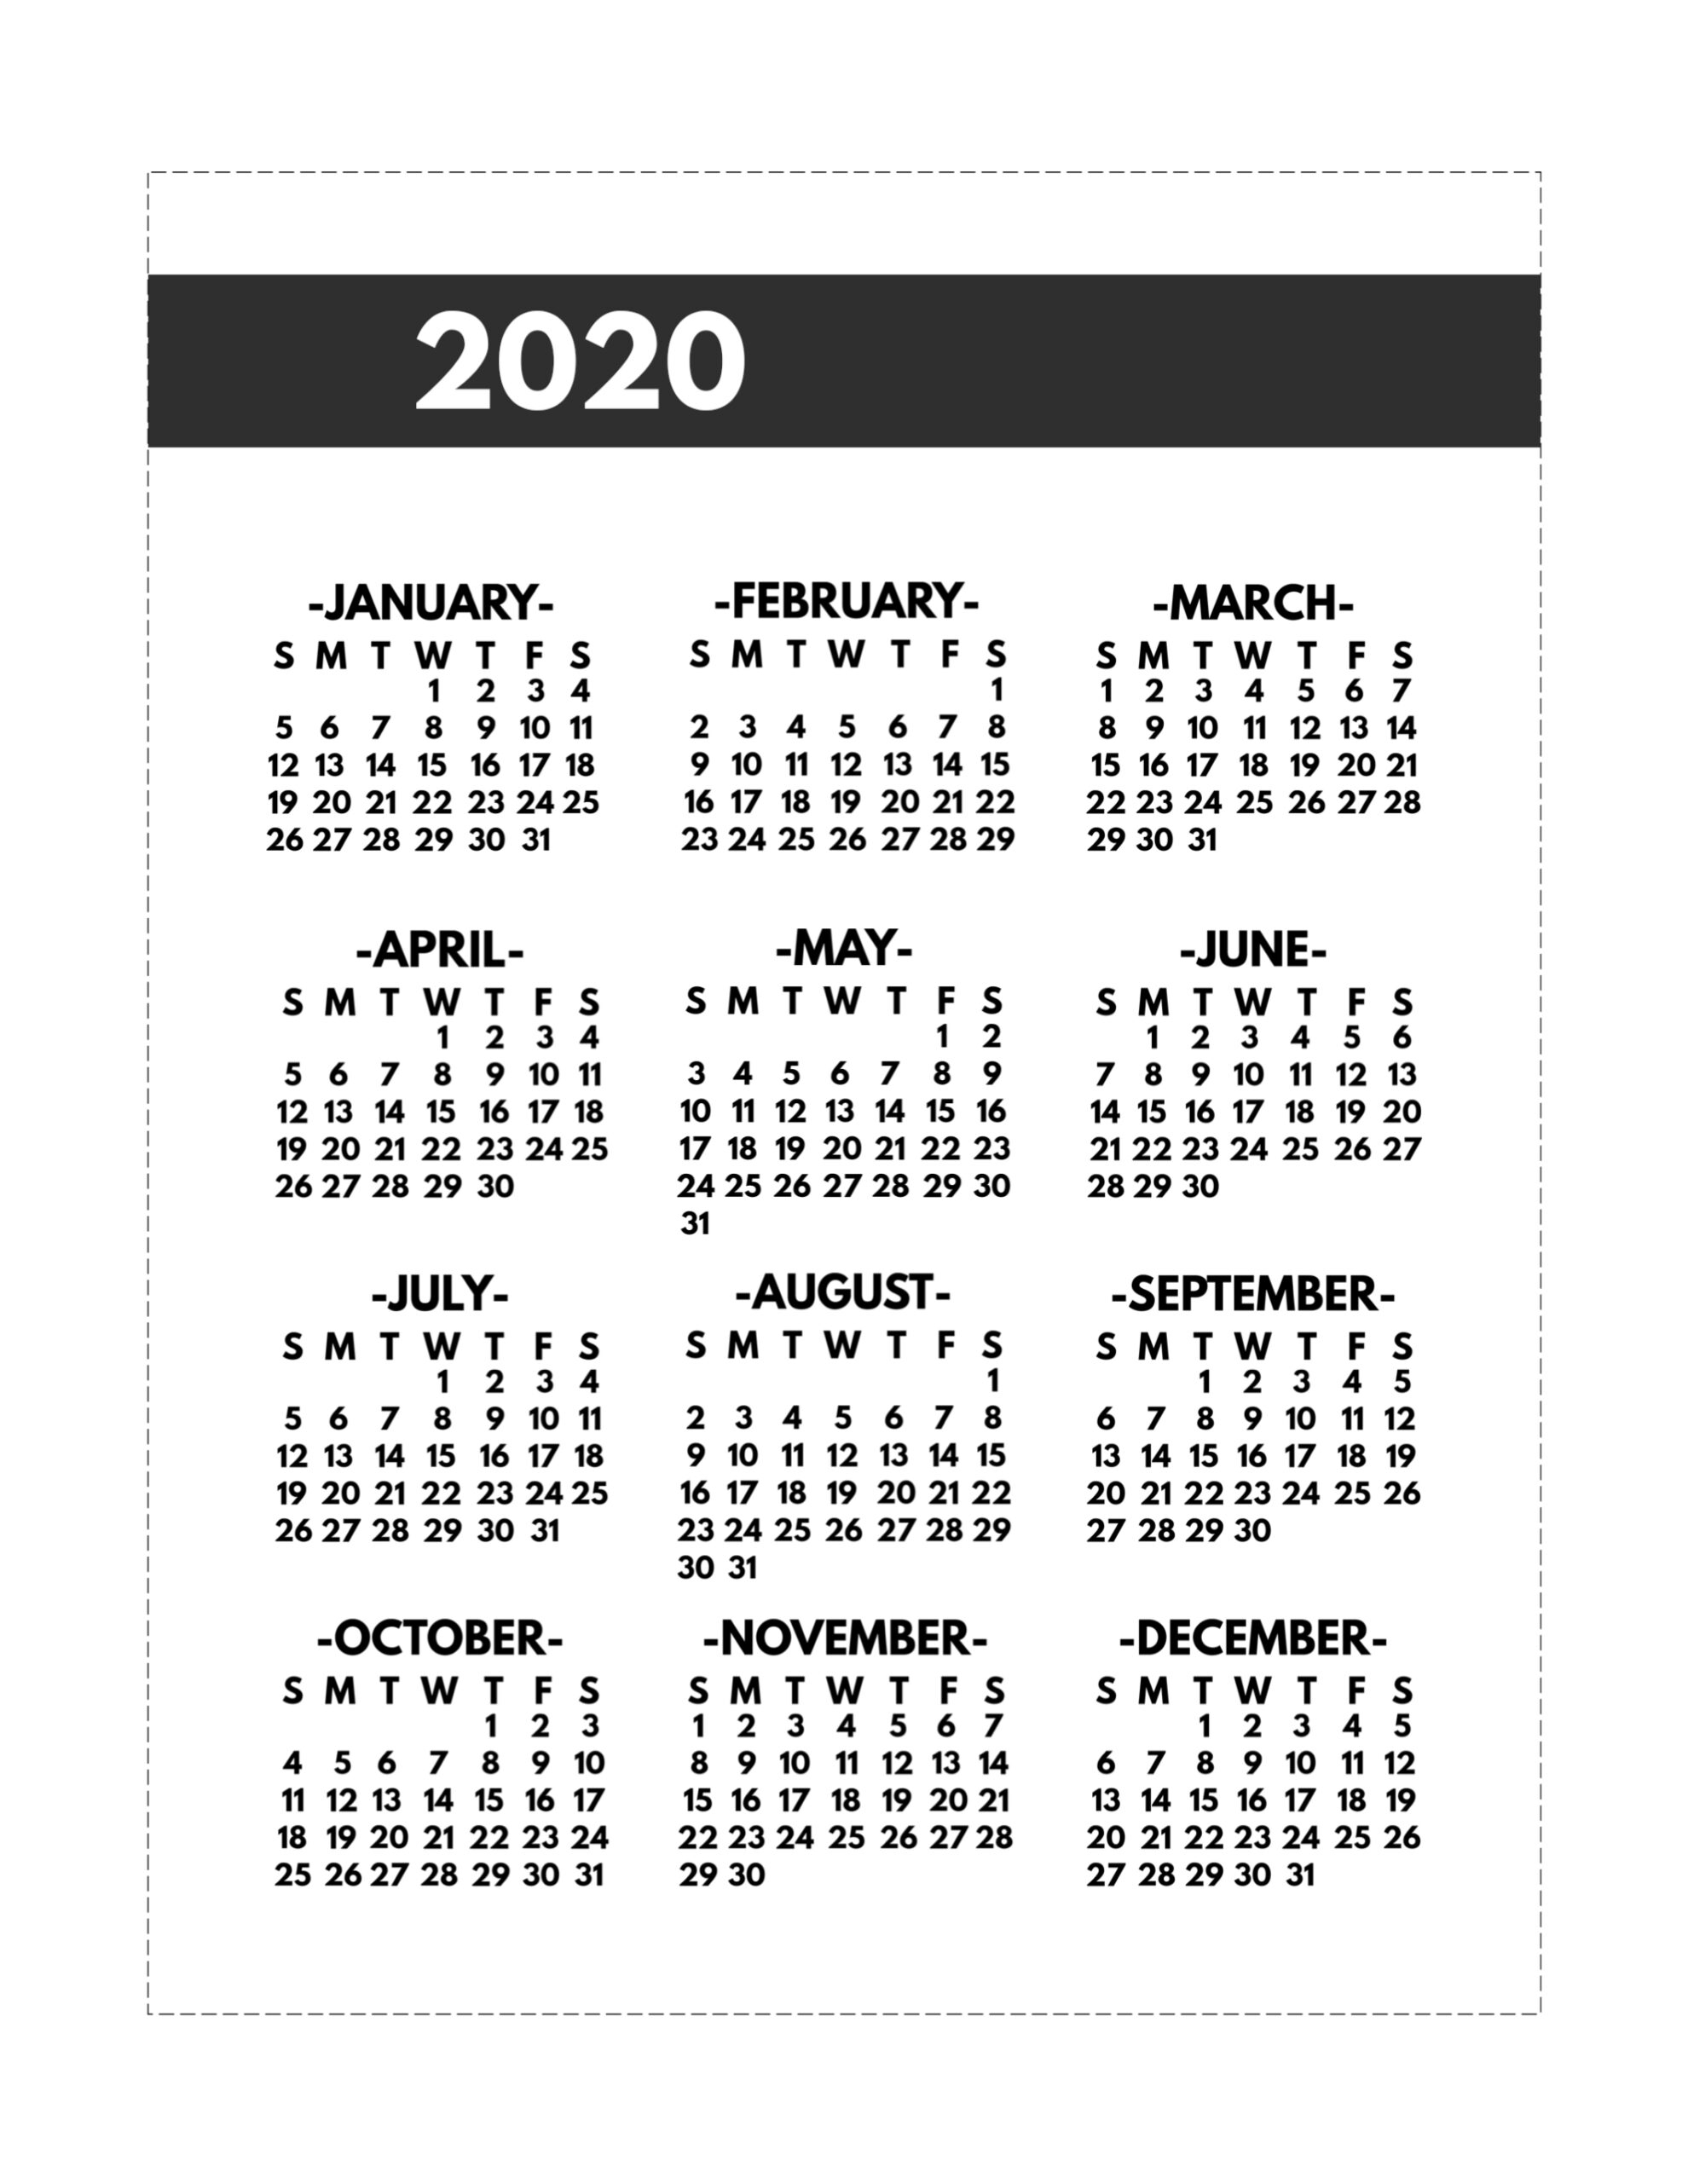 Year At A Glance 2020 - Calendar Inspiration Design with regard to At A Glance Calendars 2020